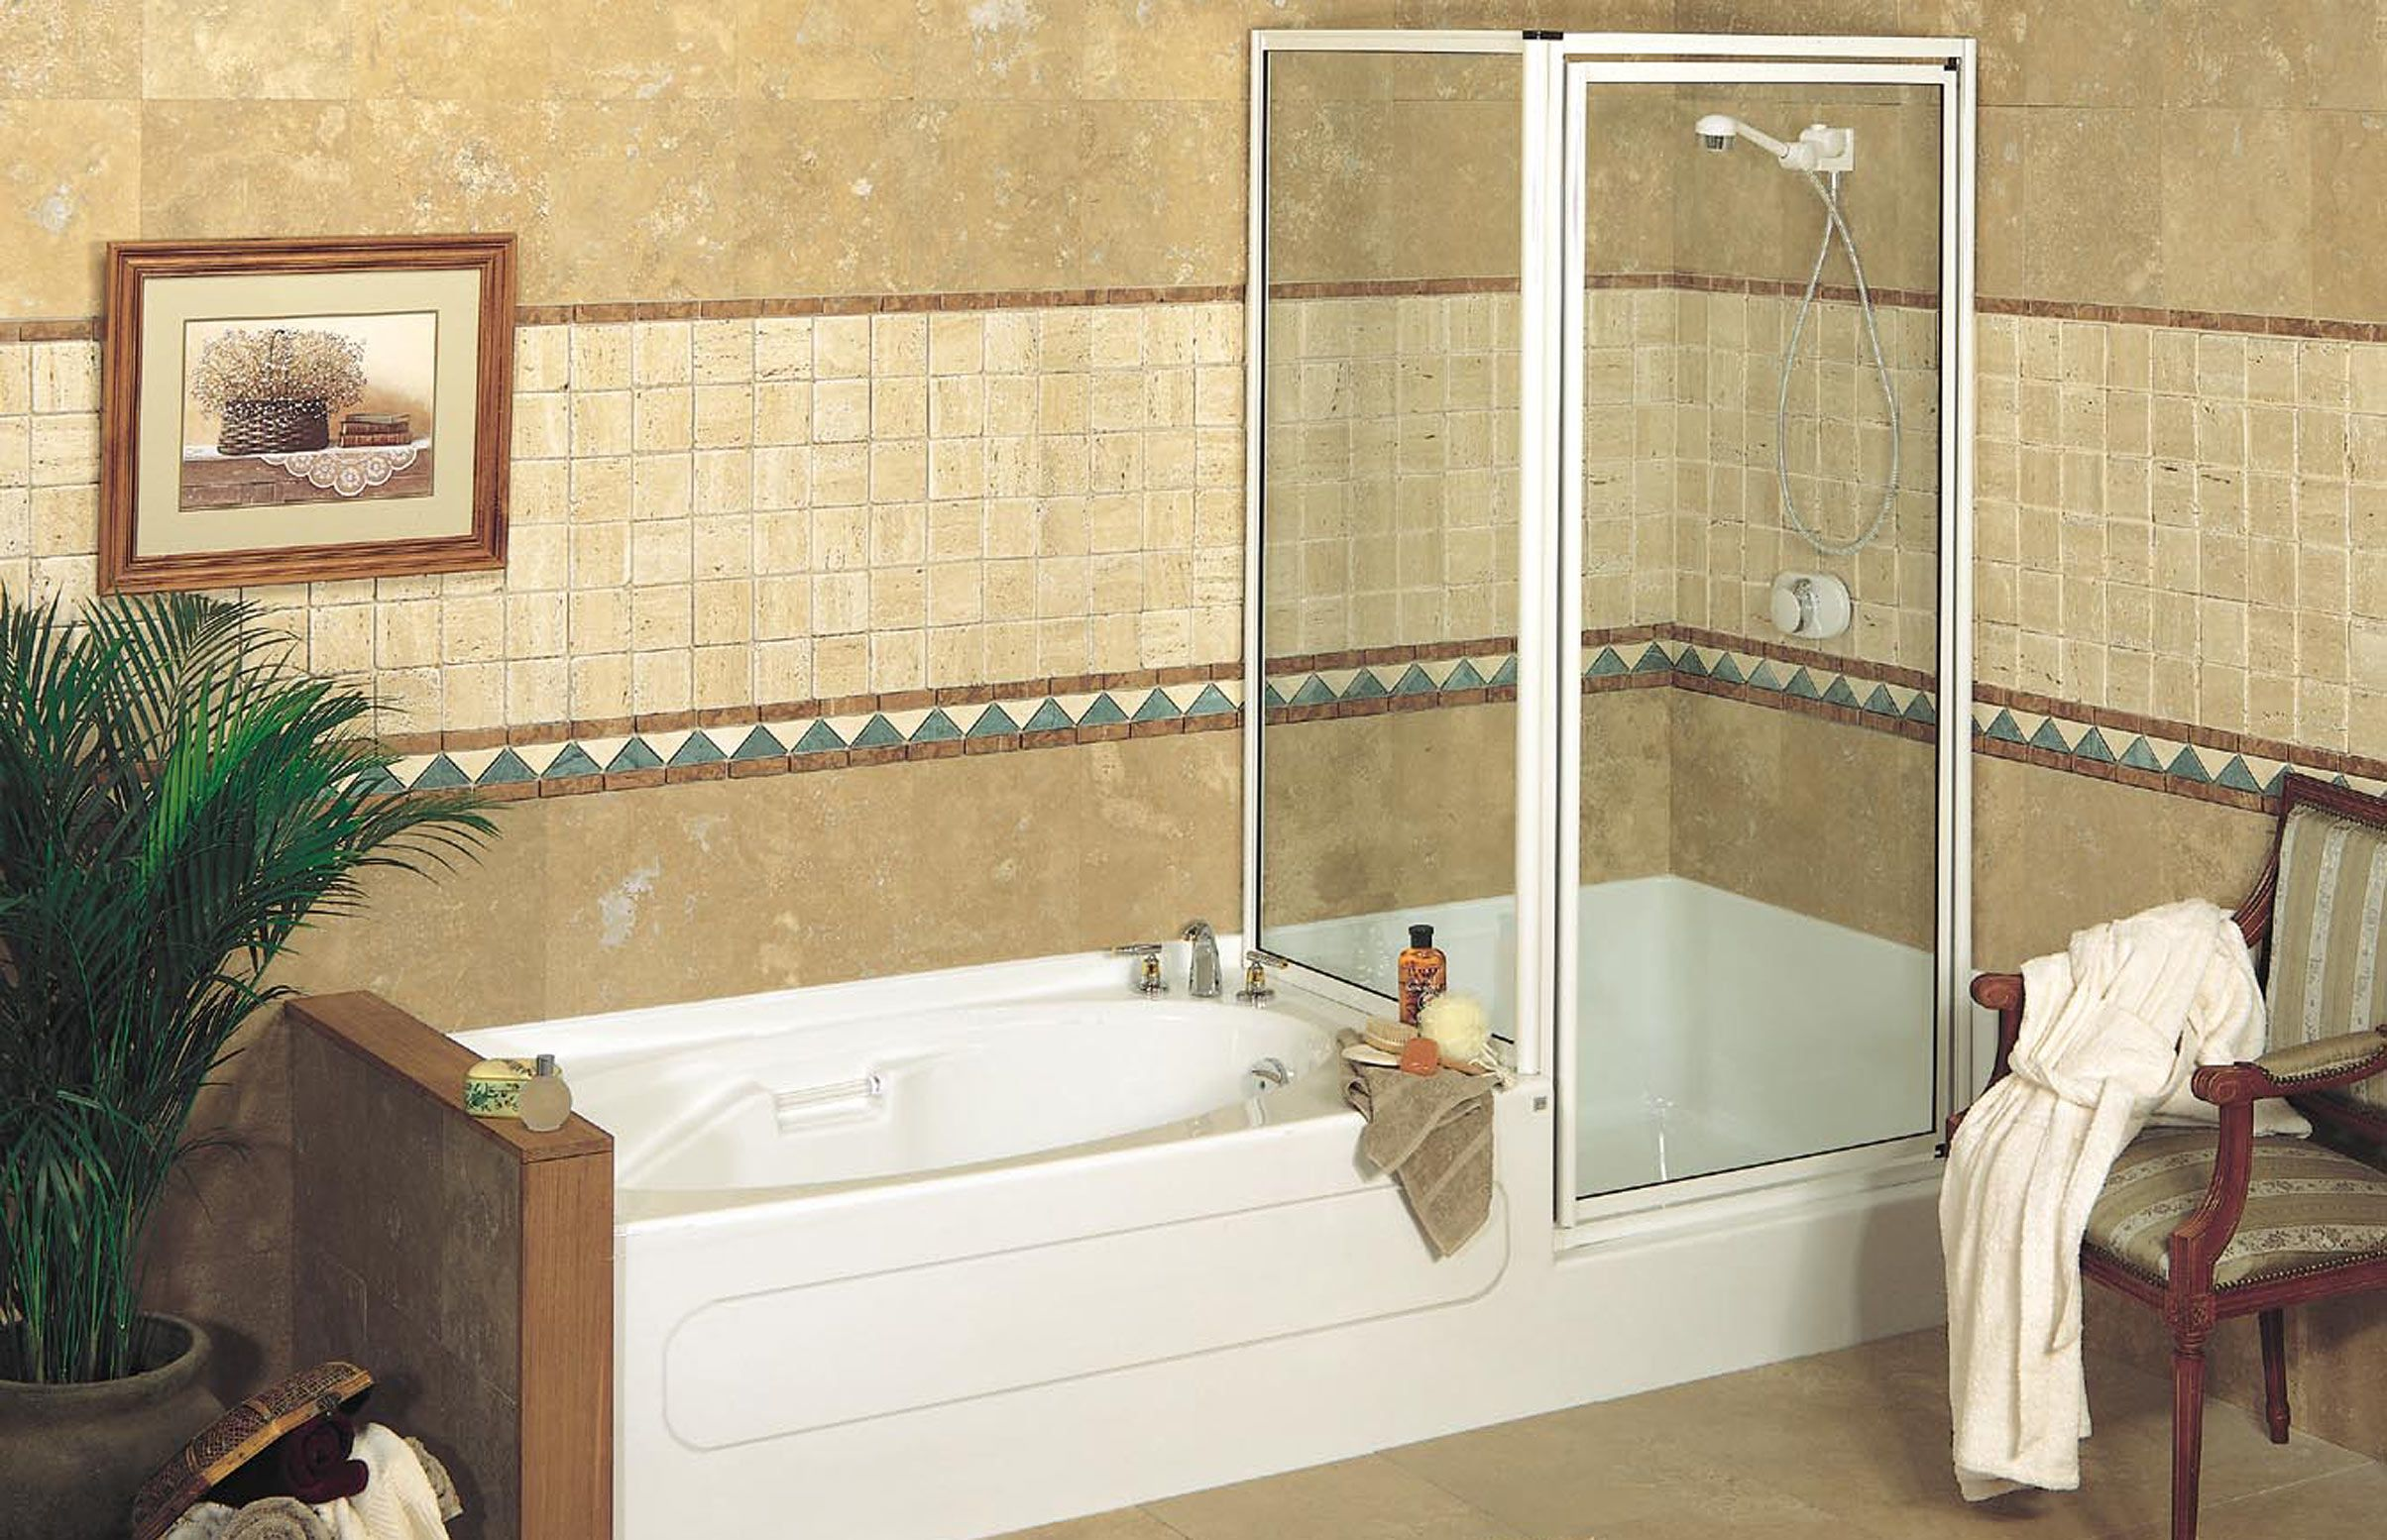 Apex 96 8 Ft Alcove Or Tub Showers Bathtub Maax Professional